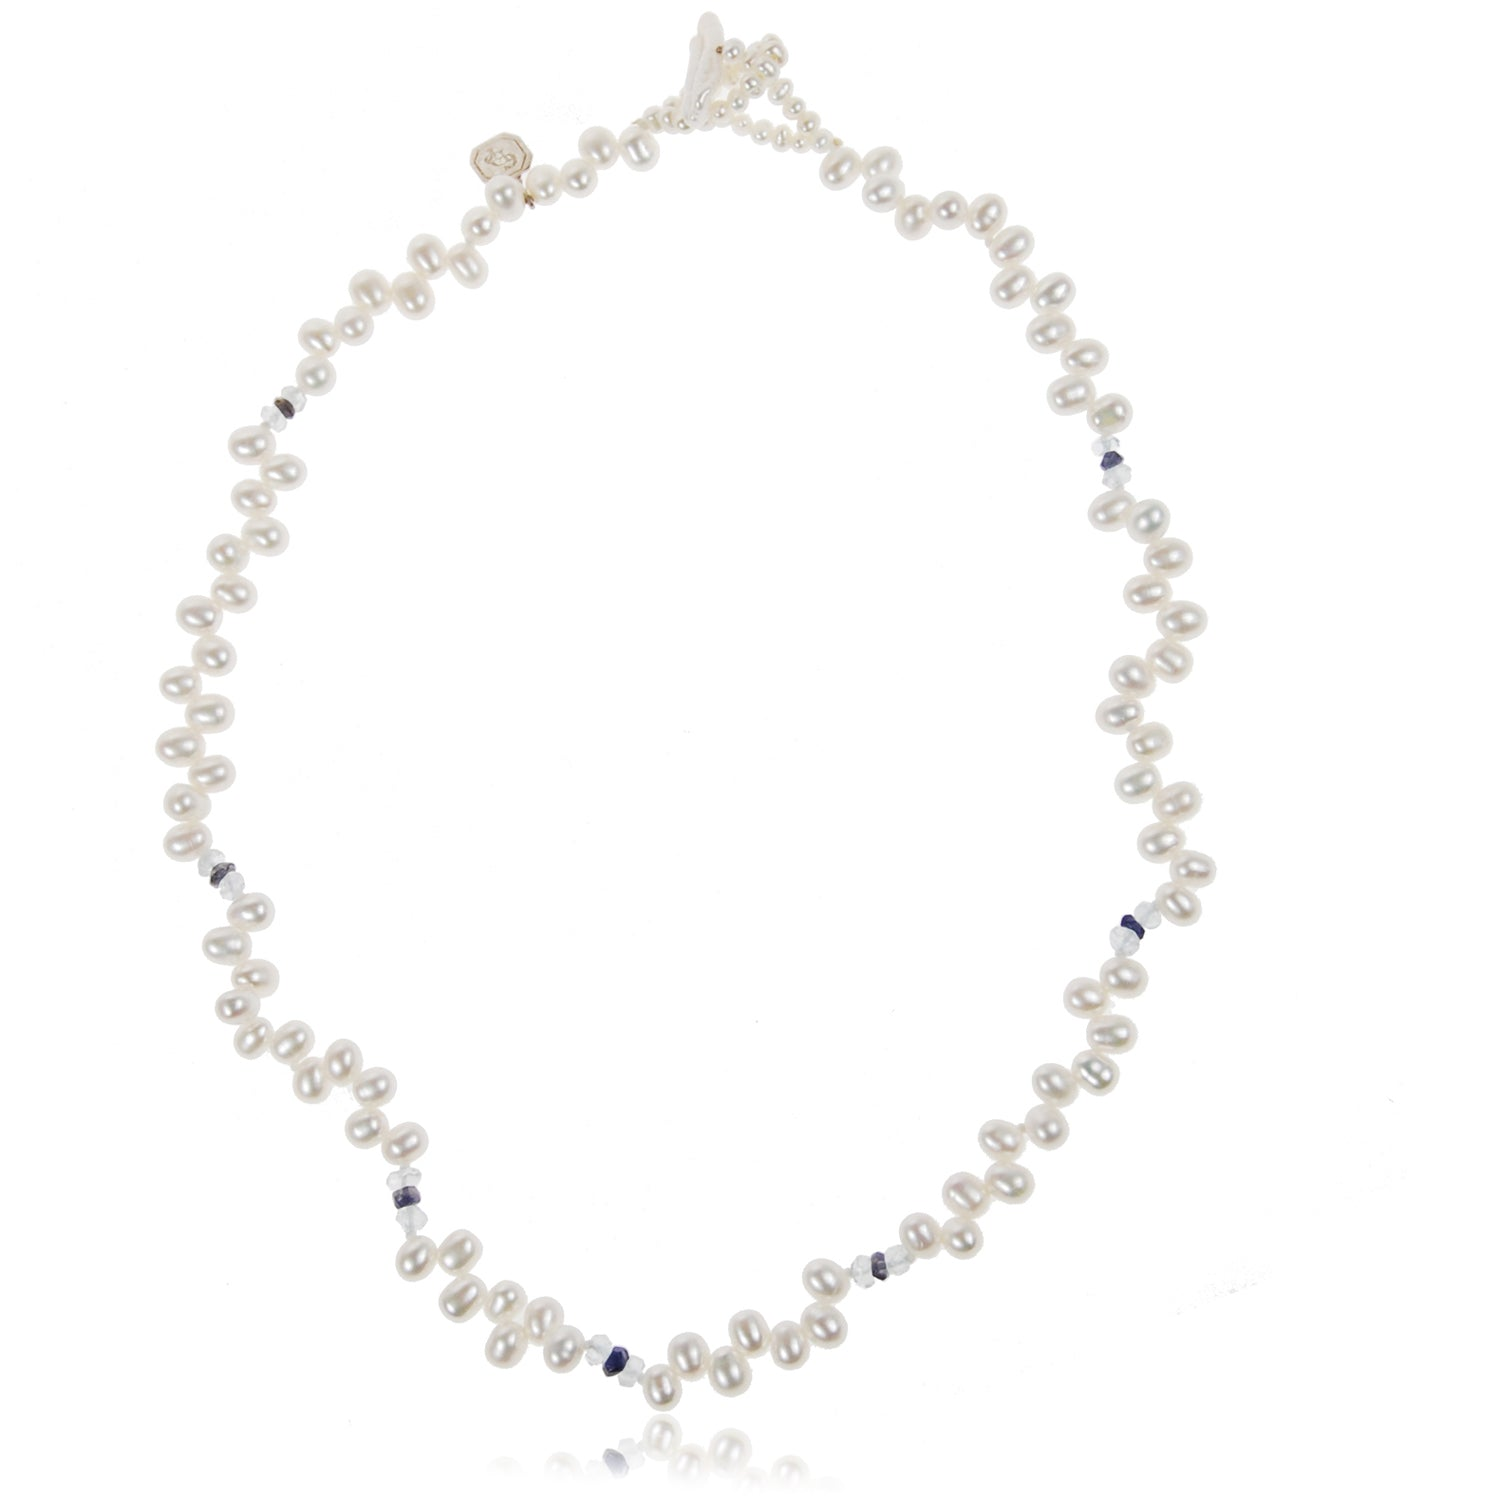 Freshwater Pearl Droplet Necklace with Semi Precious Stones in White